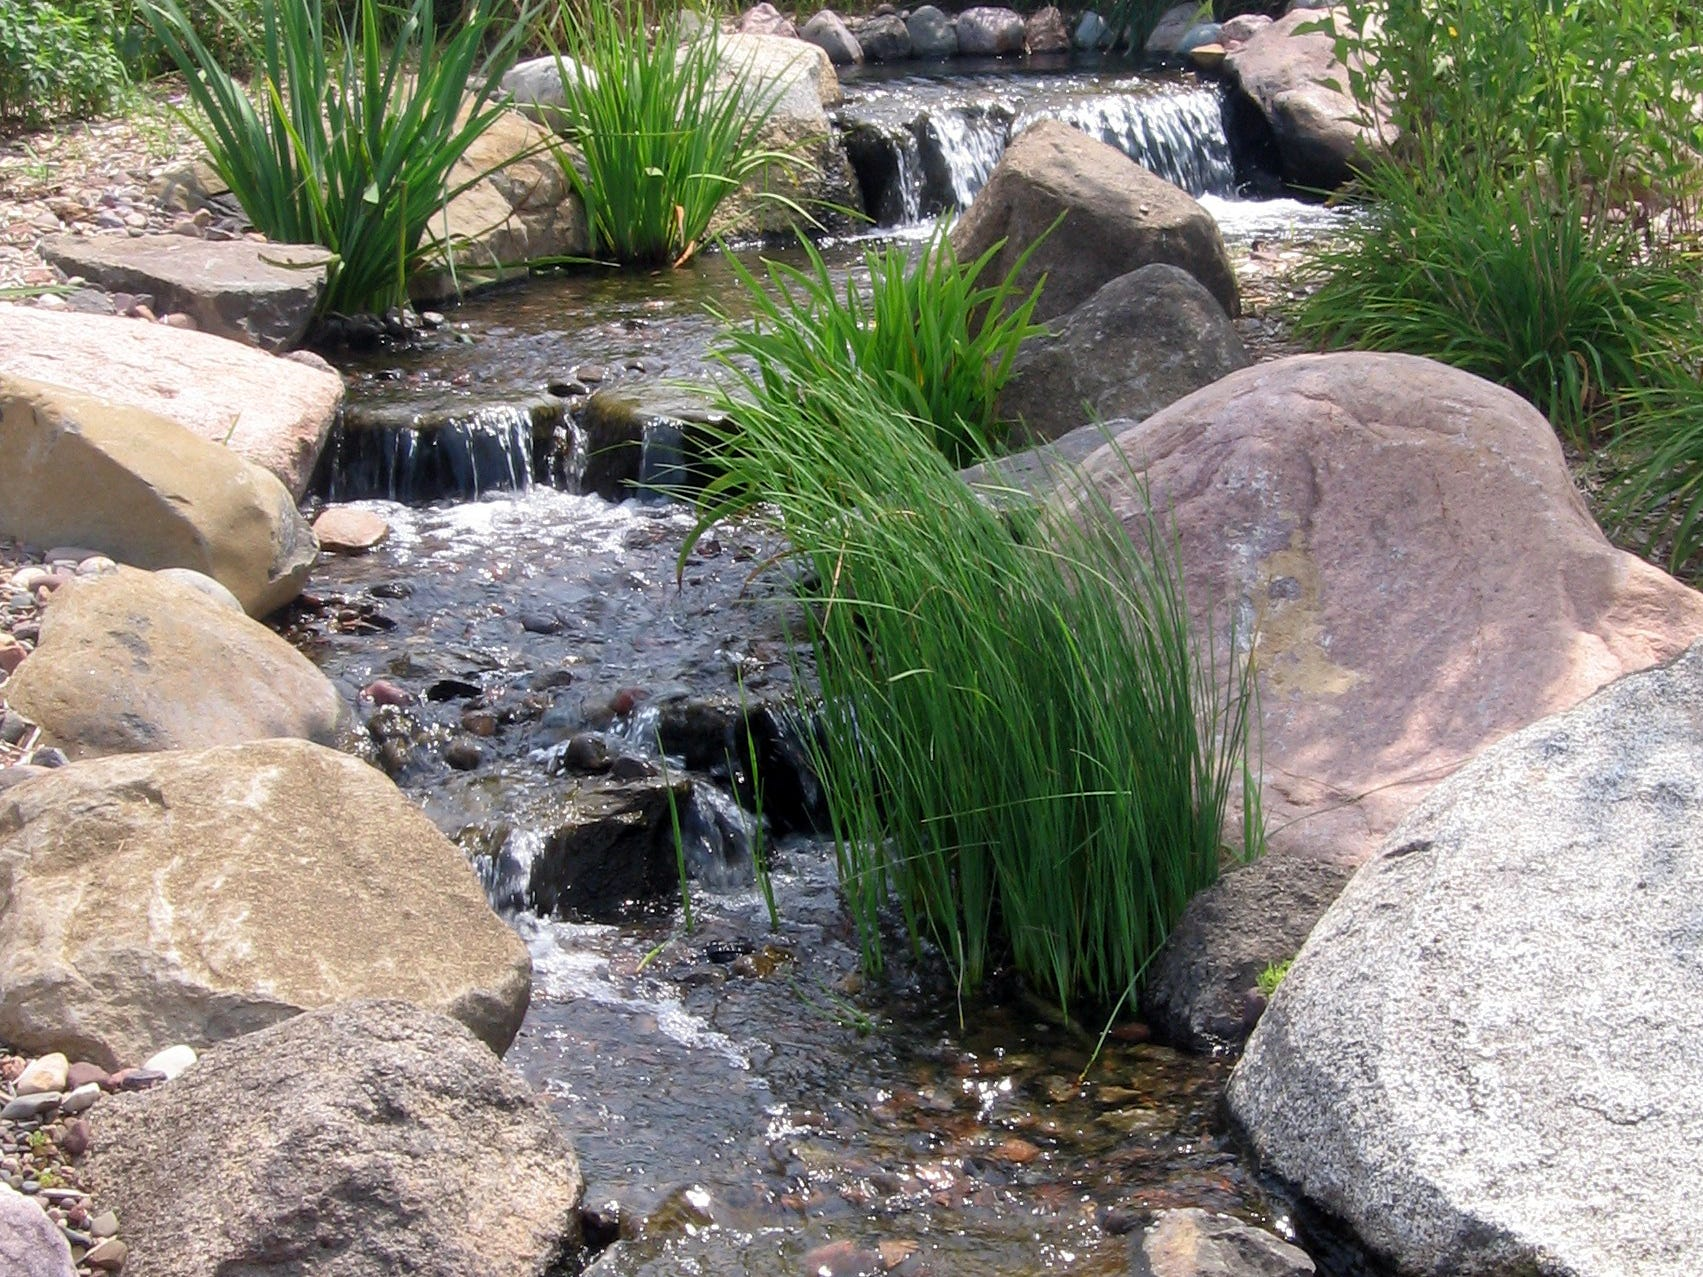 This picture shows a stream with waterfalls built out of granite boulders that flows into a pondless basin. The stream is about 20 feet long and 2 ½ feet wide.